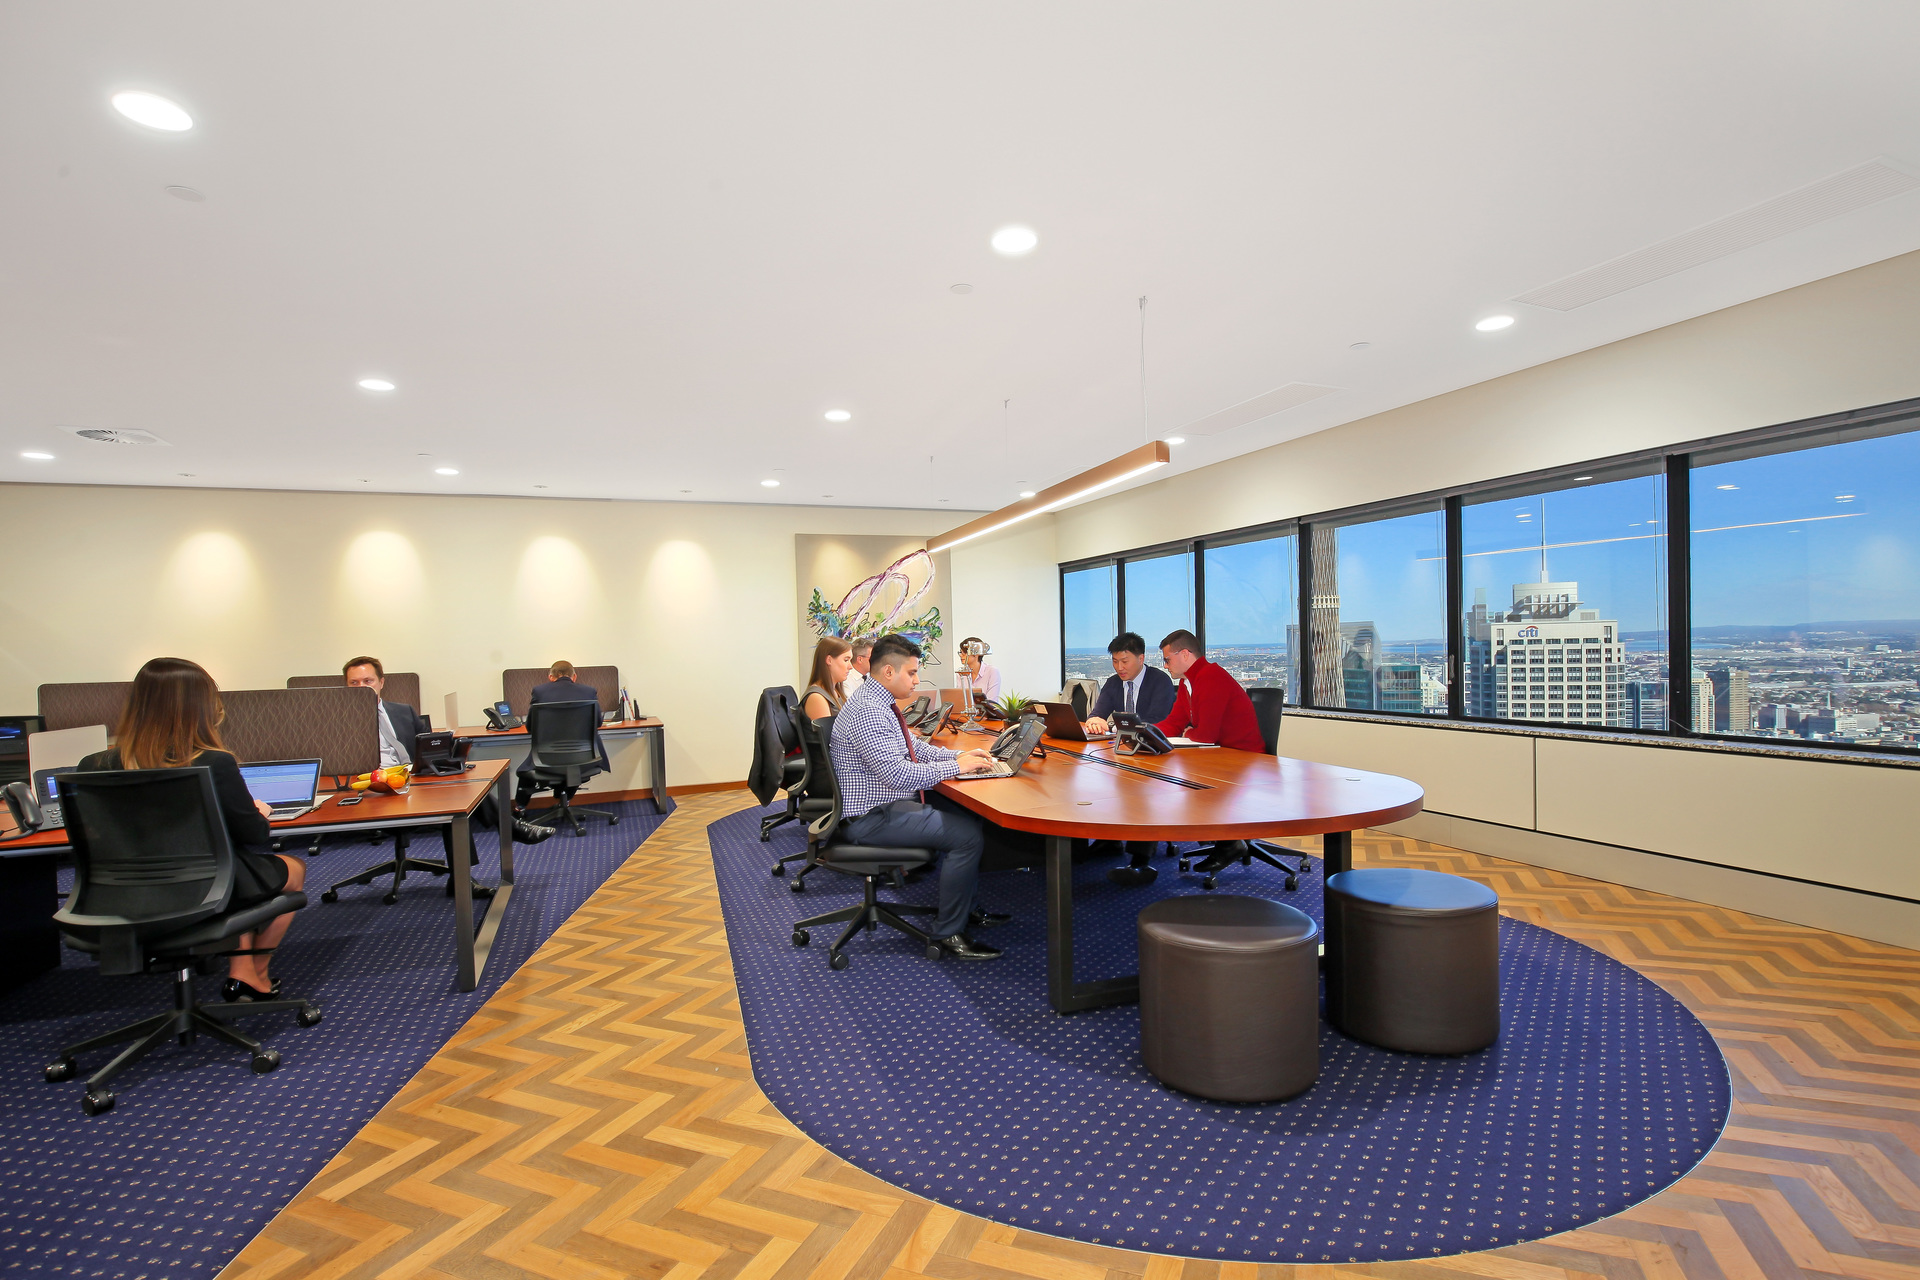 OFFICES LOCATED IN SYDNEY FOR 3-PERSON WITH NATURAL VIEWS